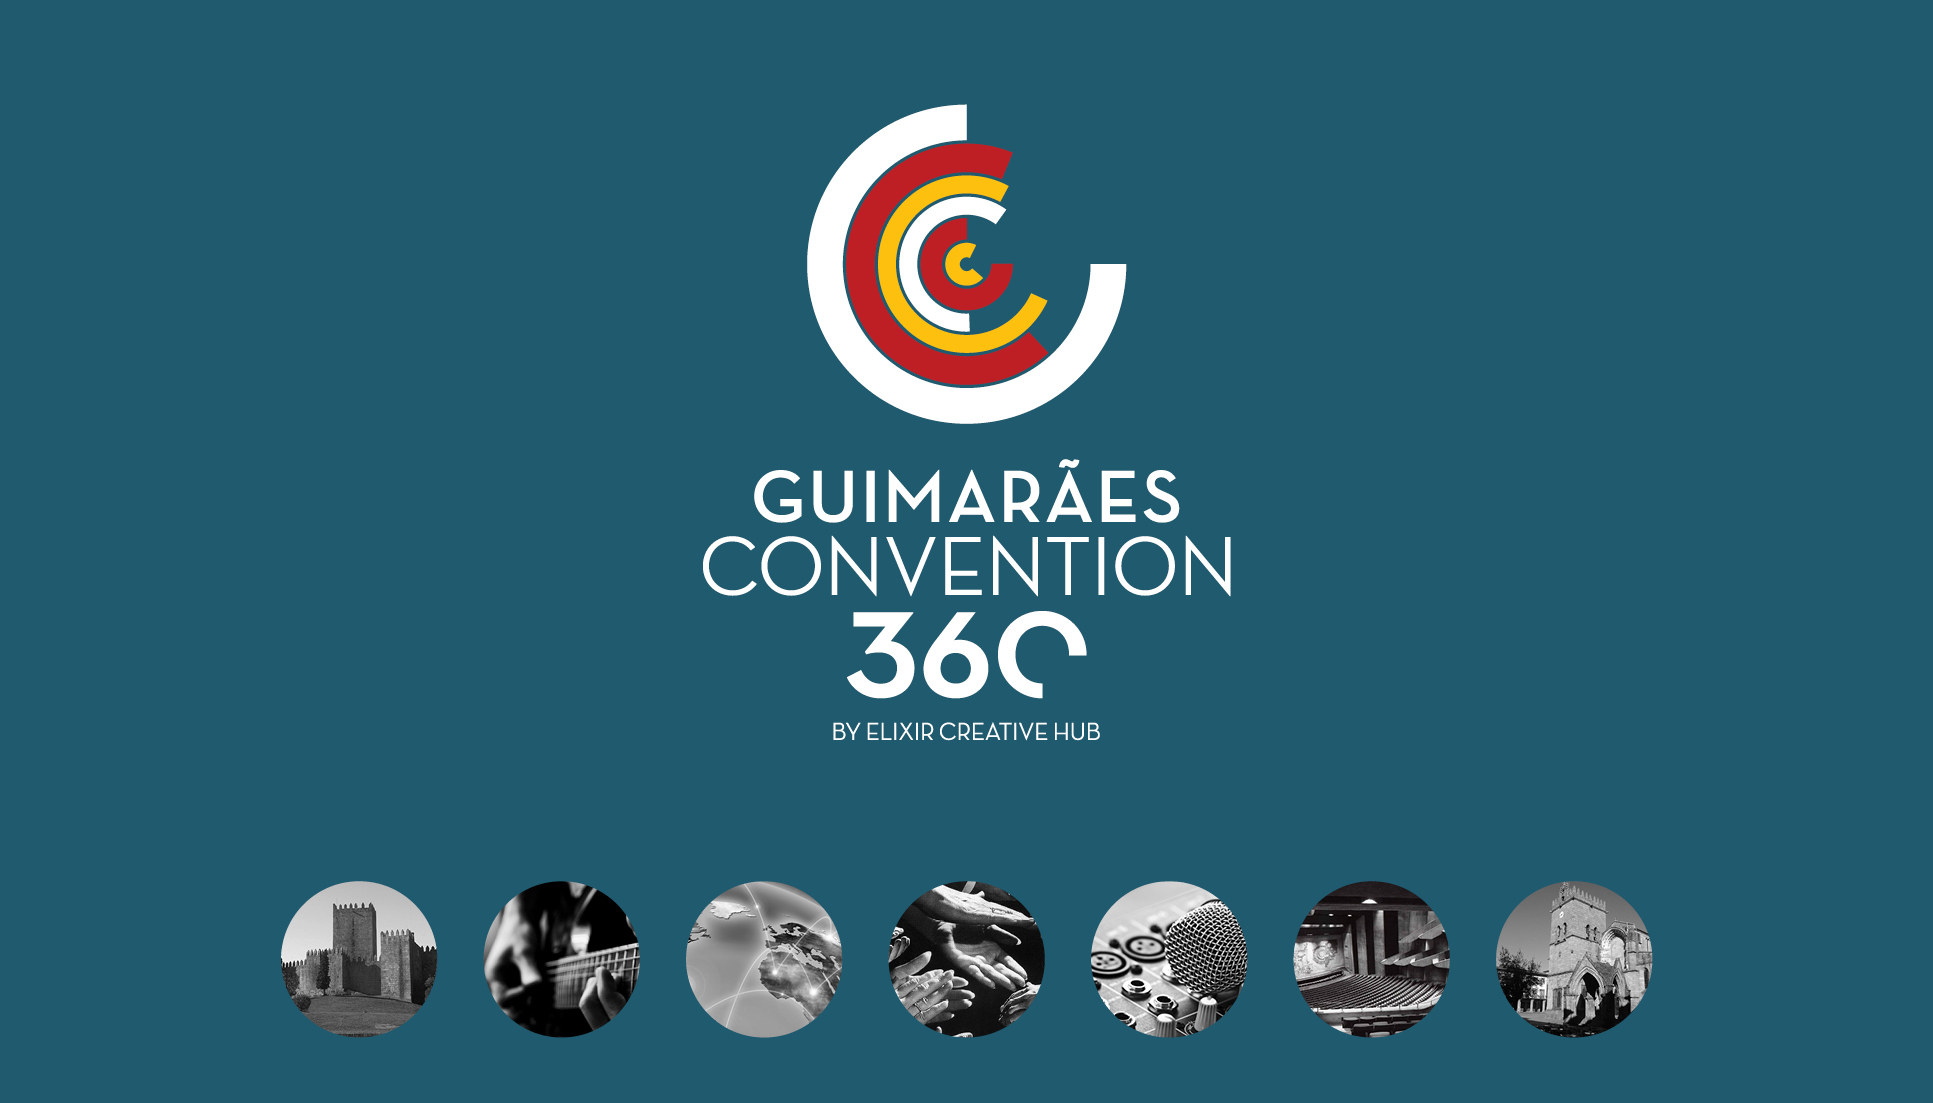 GUIMARAES-CONVENTION-360_site